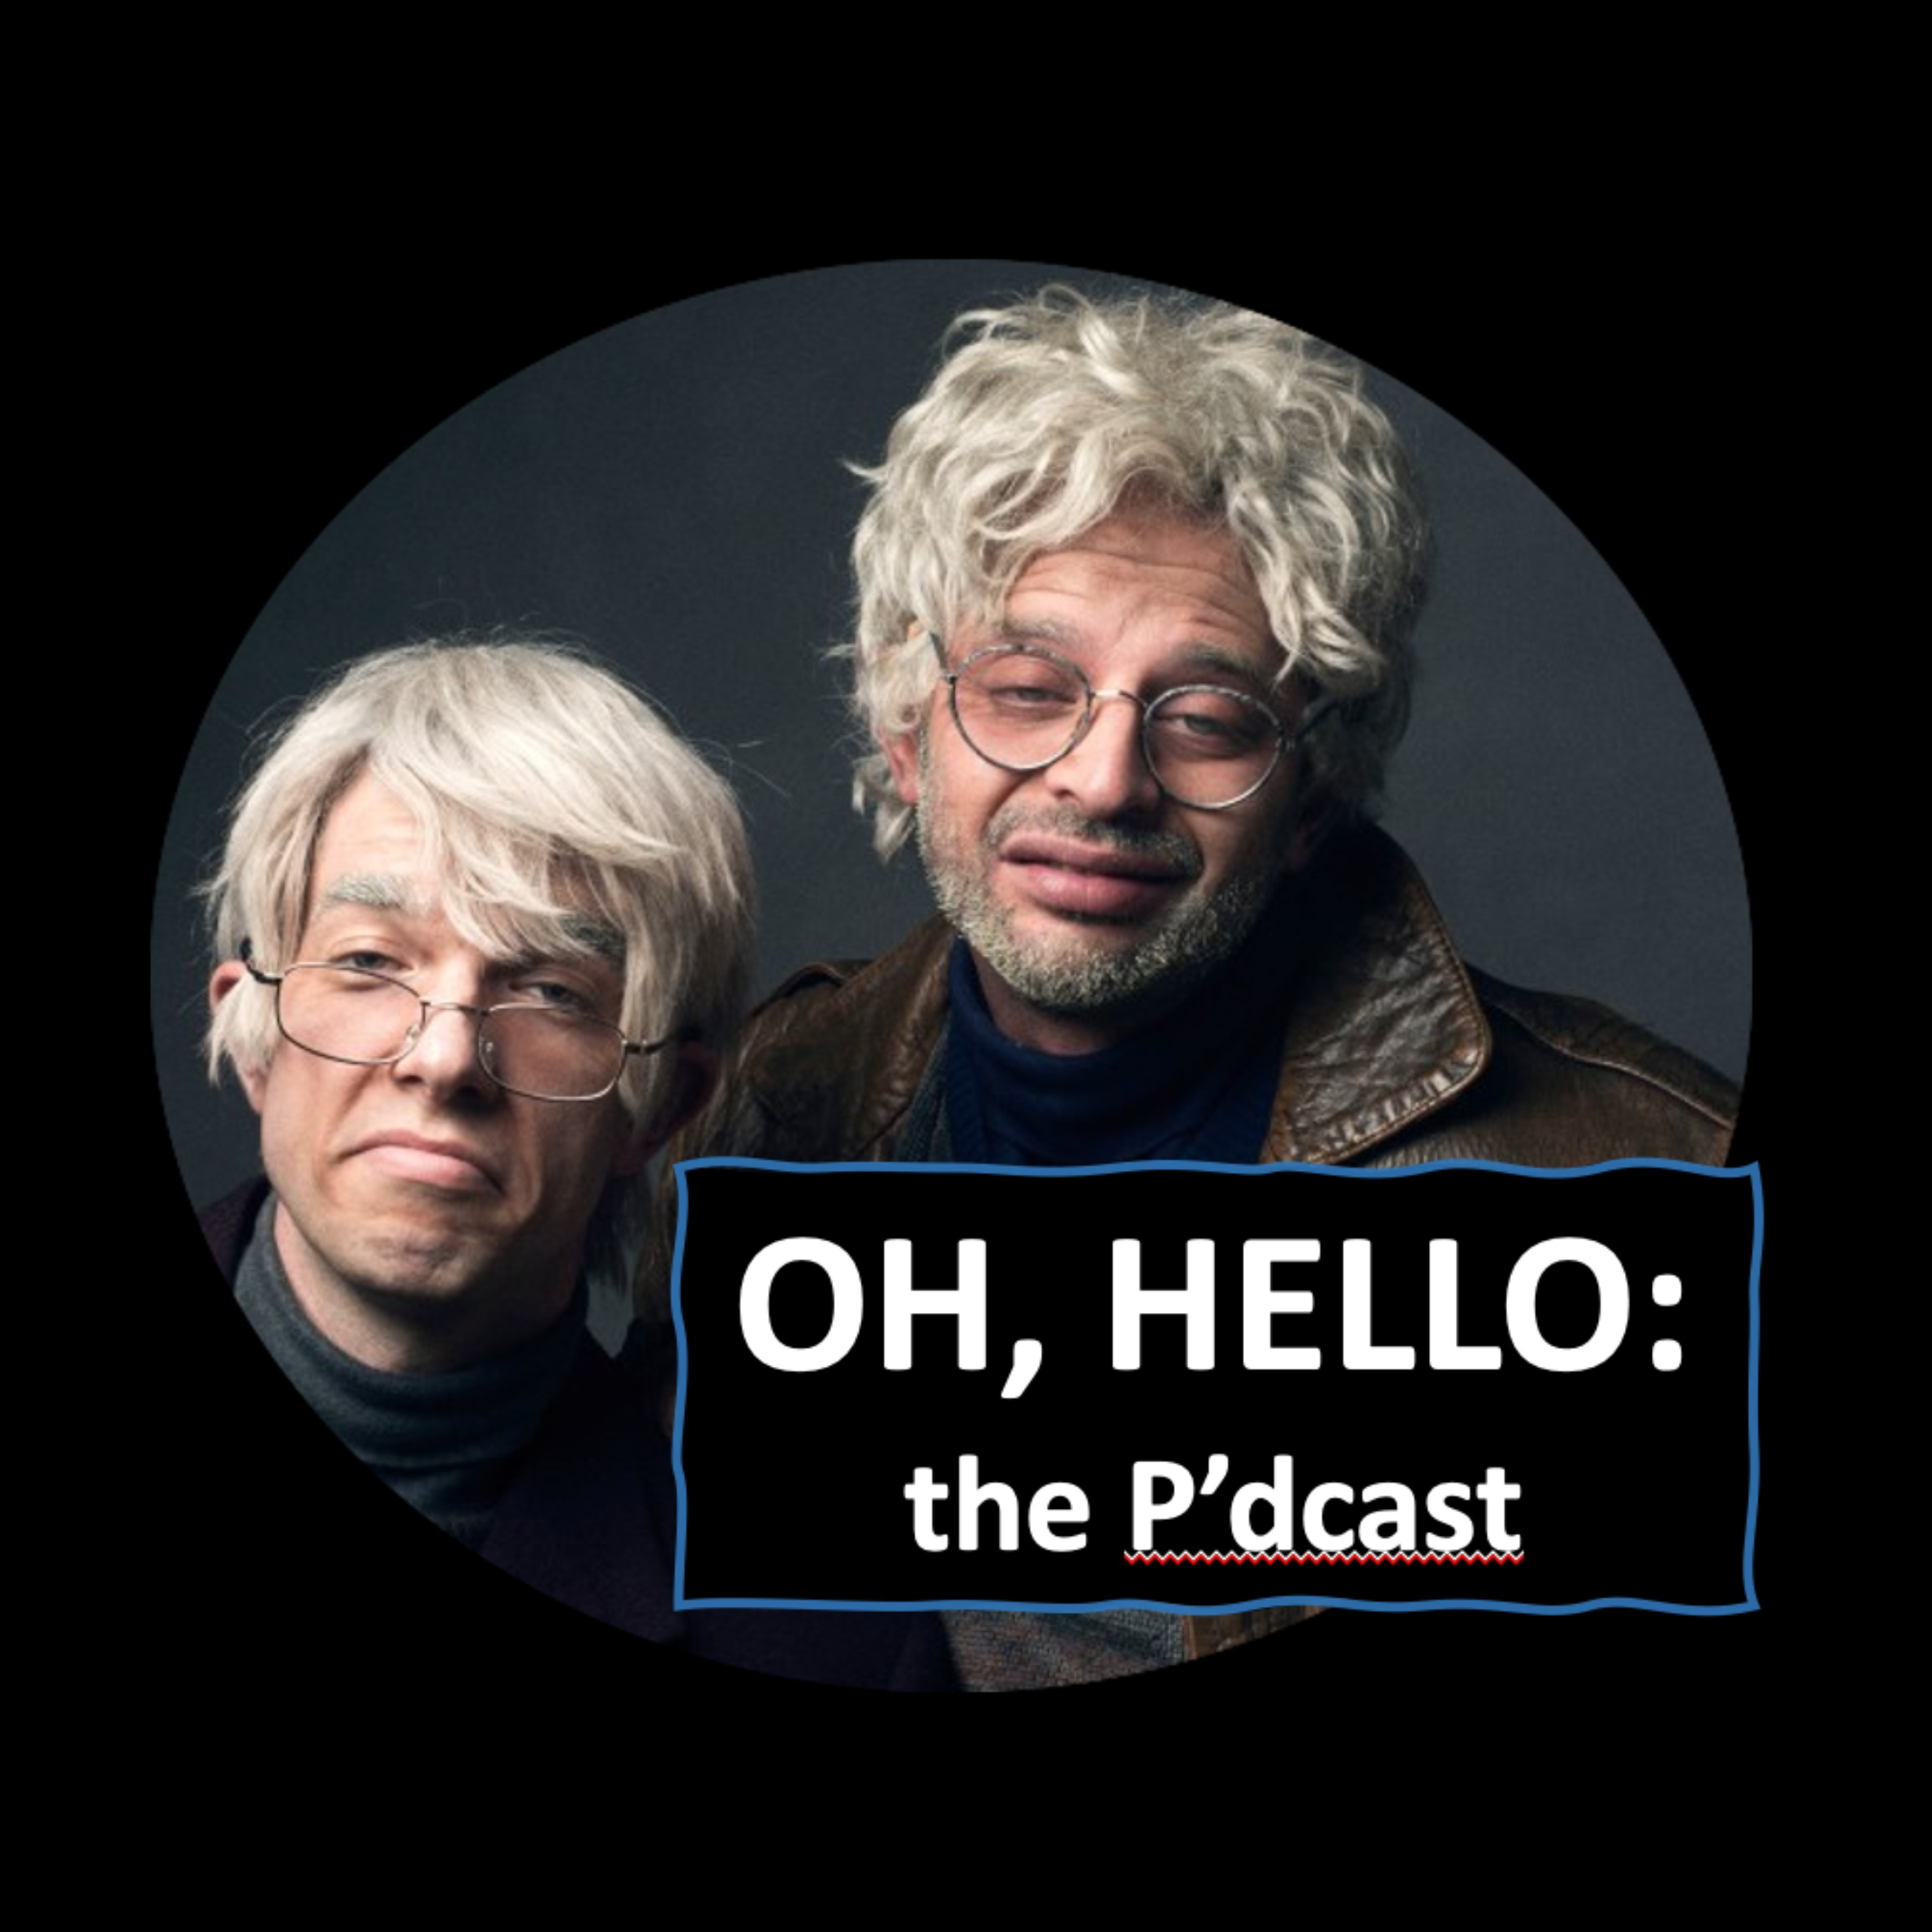 7. Oh, Hello: The Podcast